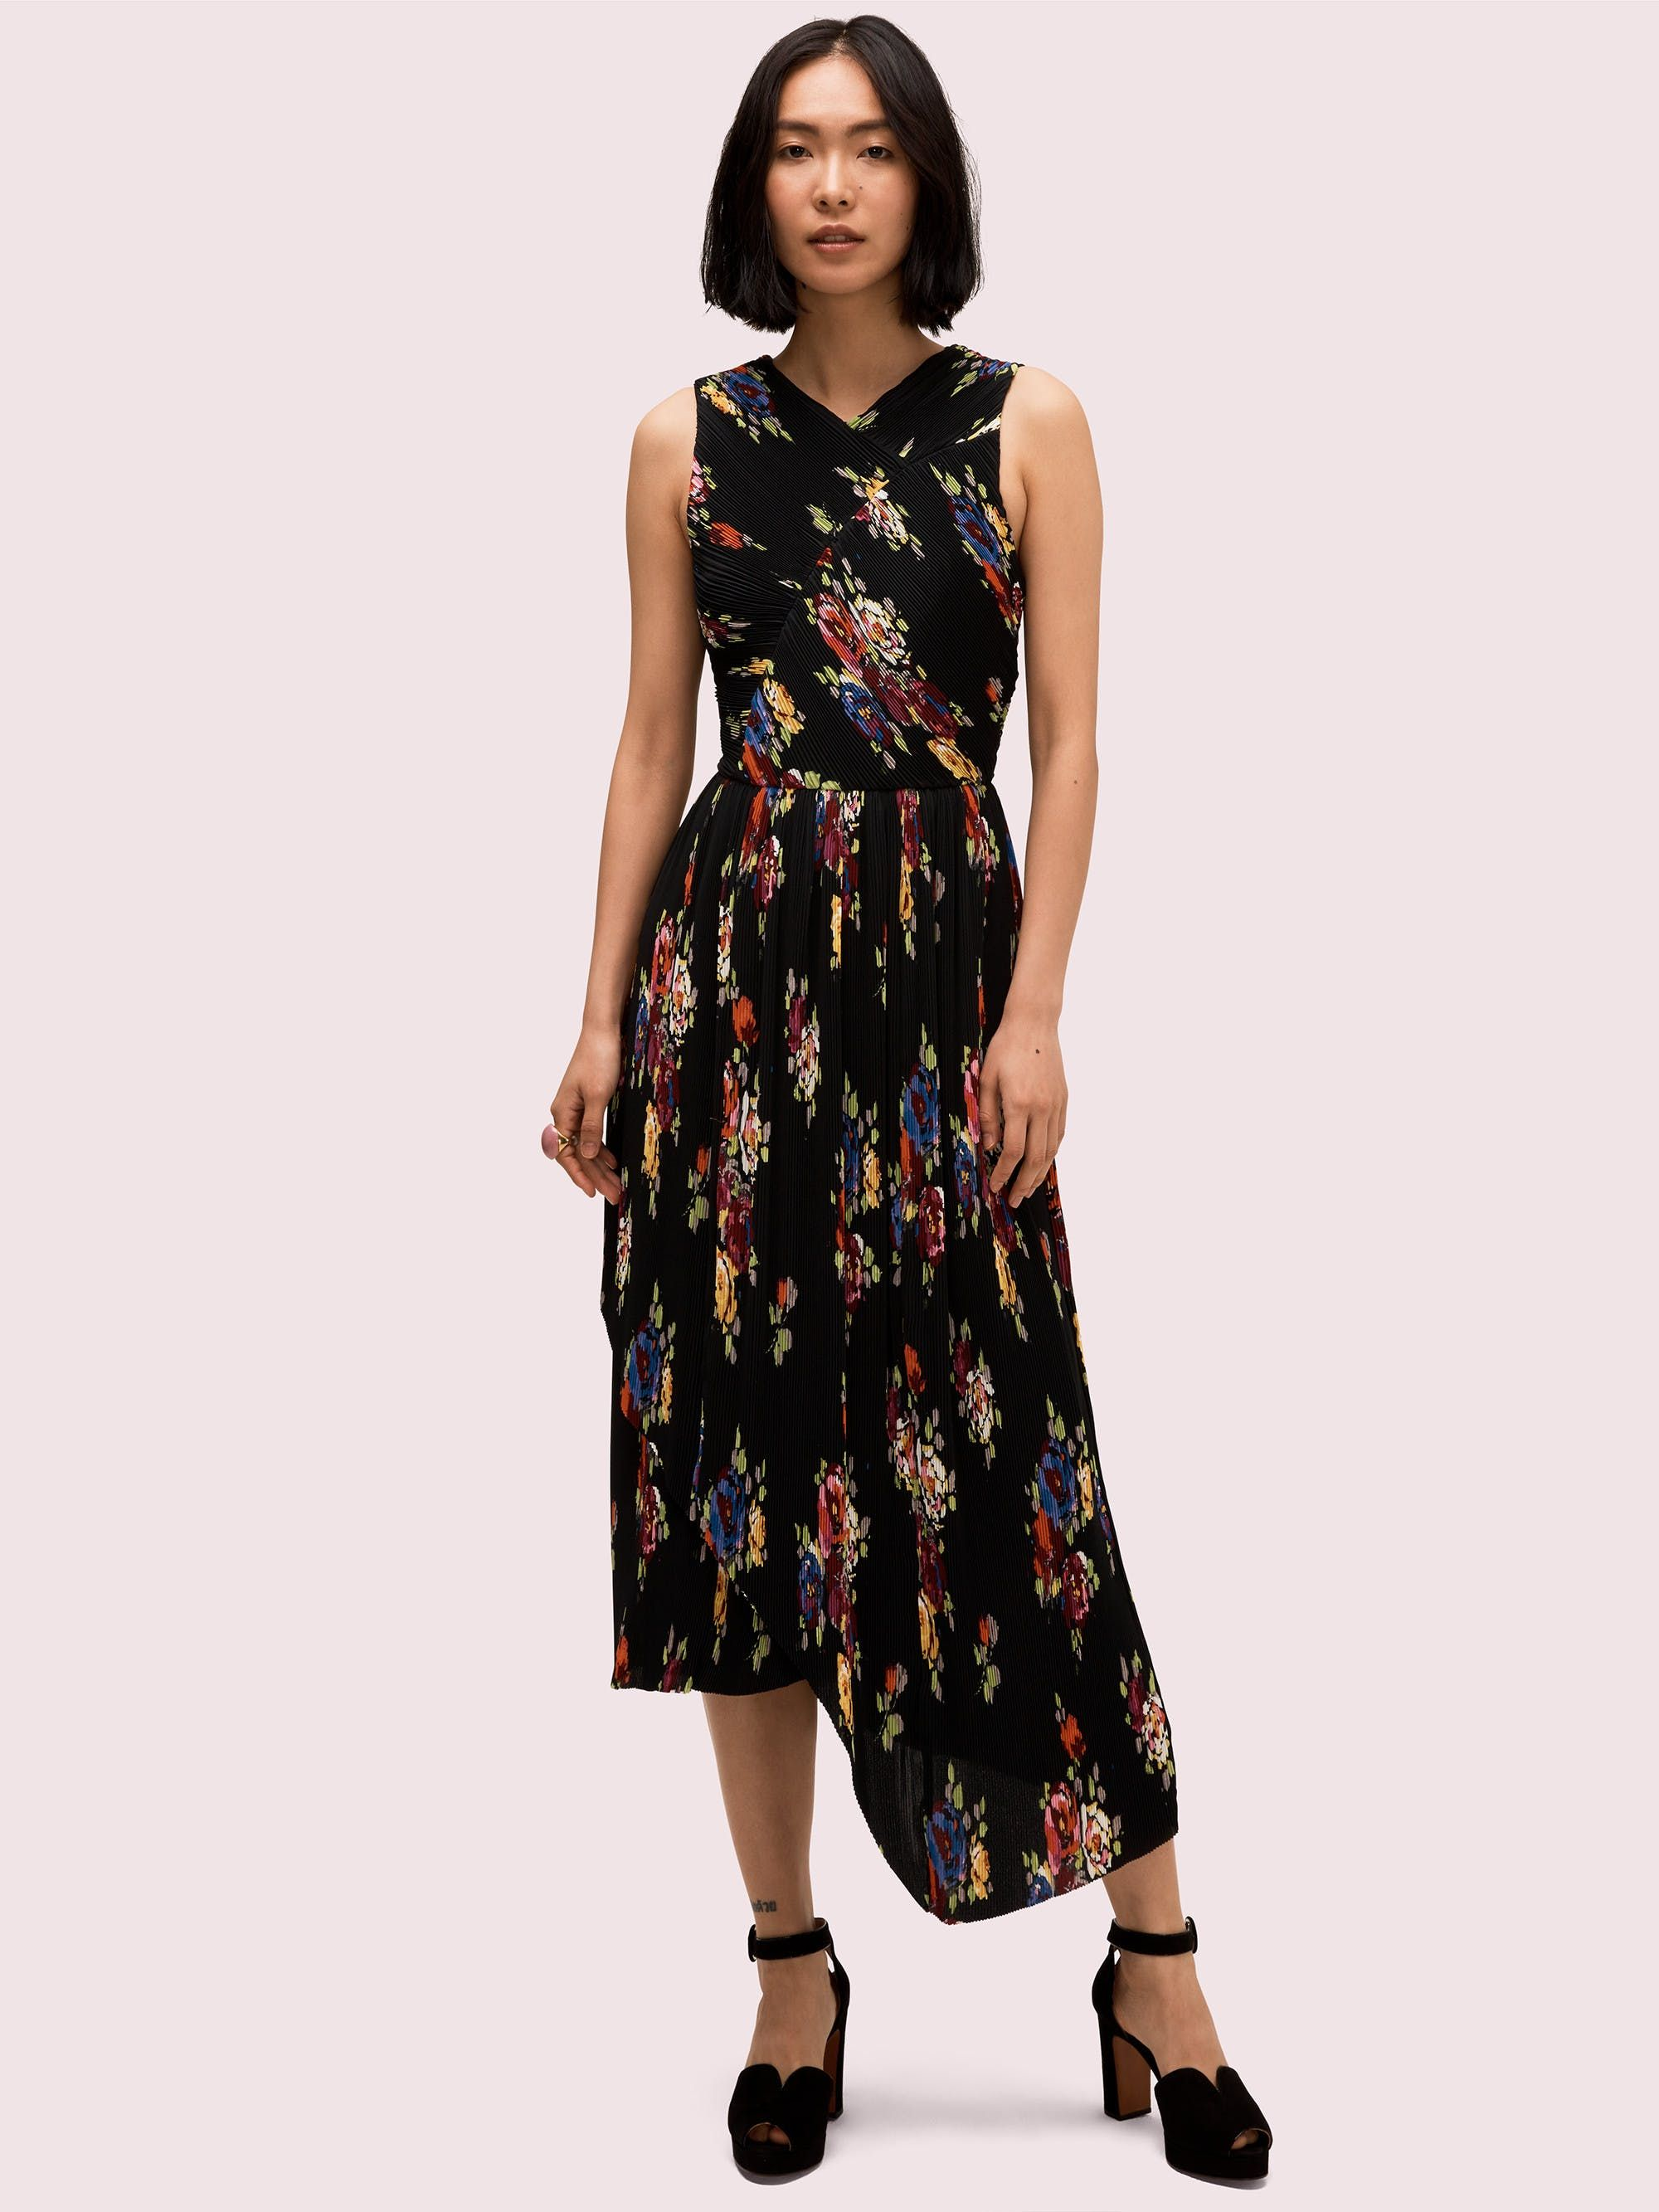 35 Fall Wedding Guest Dresses For Every Budget Pleated Dress Fall Wedding Guest Dress Ruffle Floral Maxi Dress [ 2666 x 2000 Pixel ]